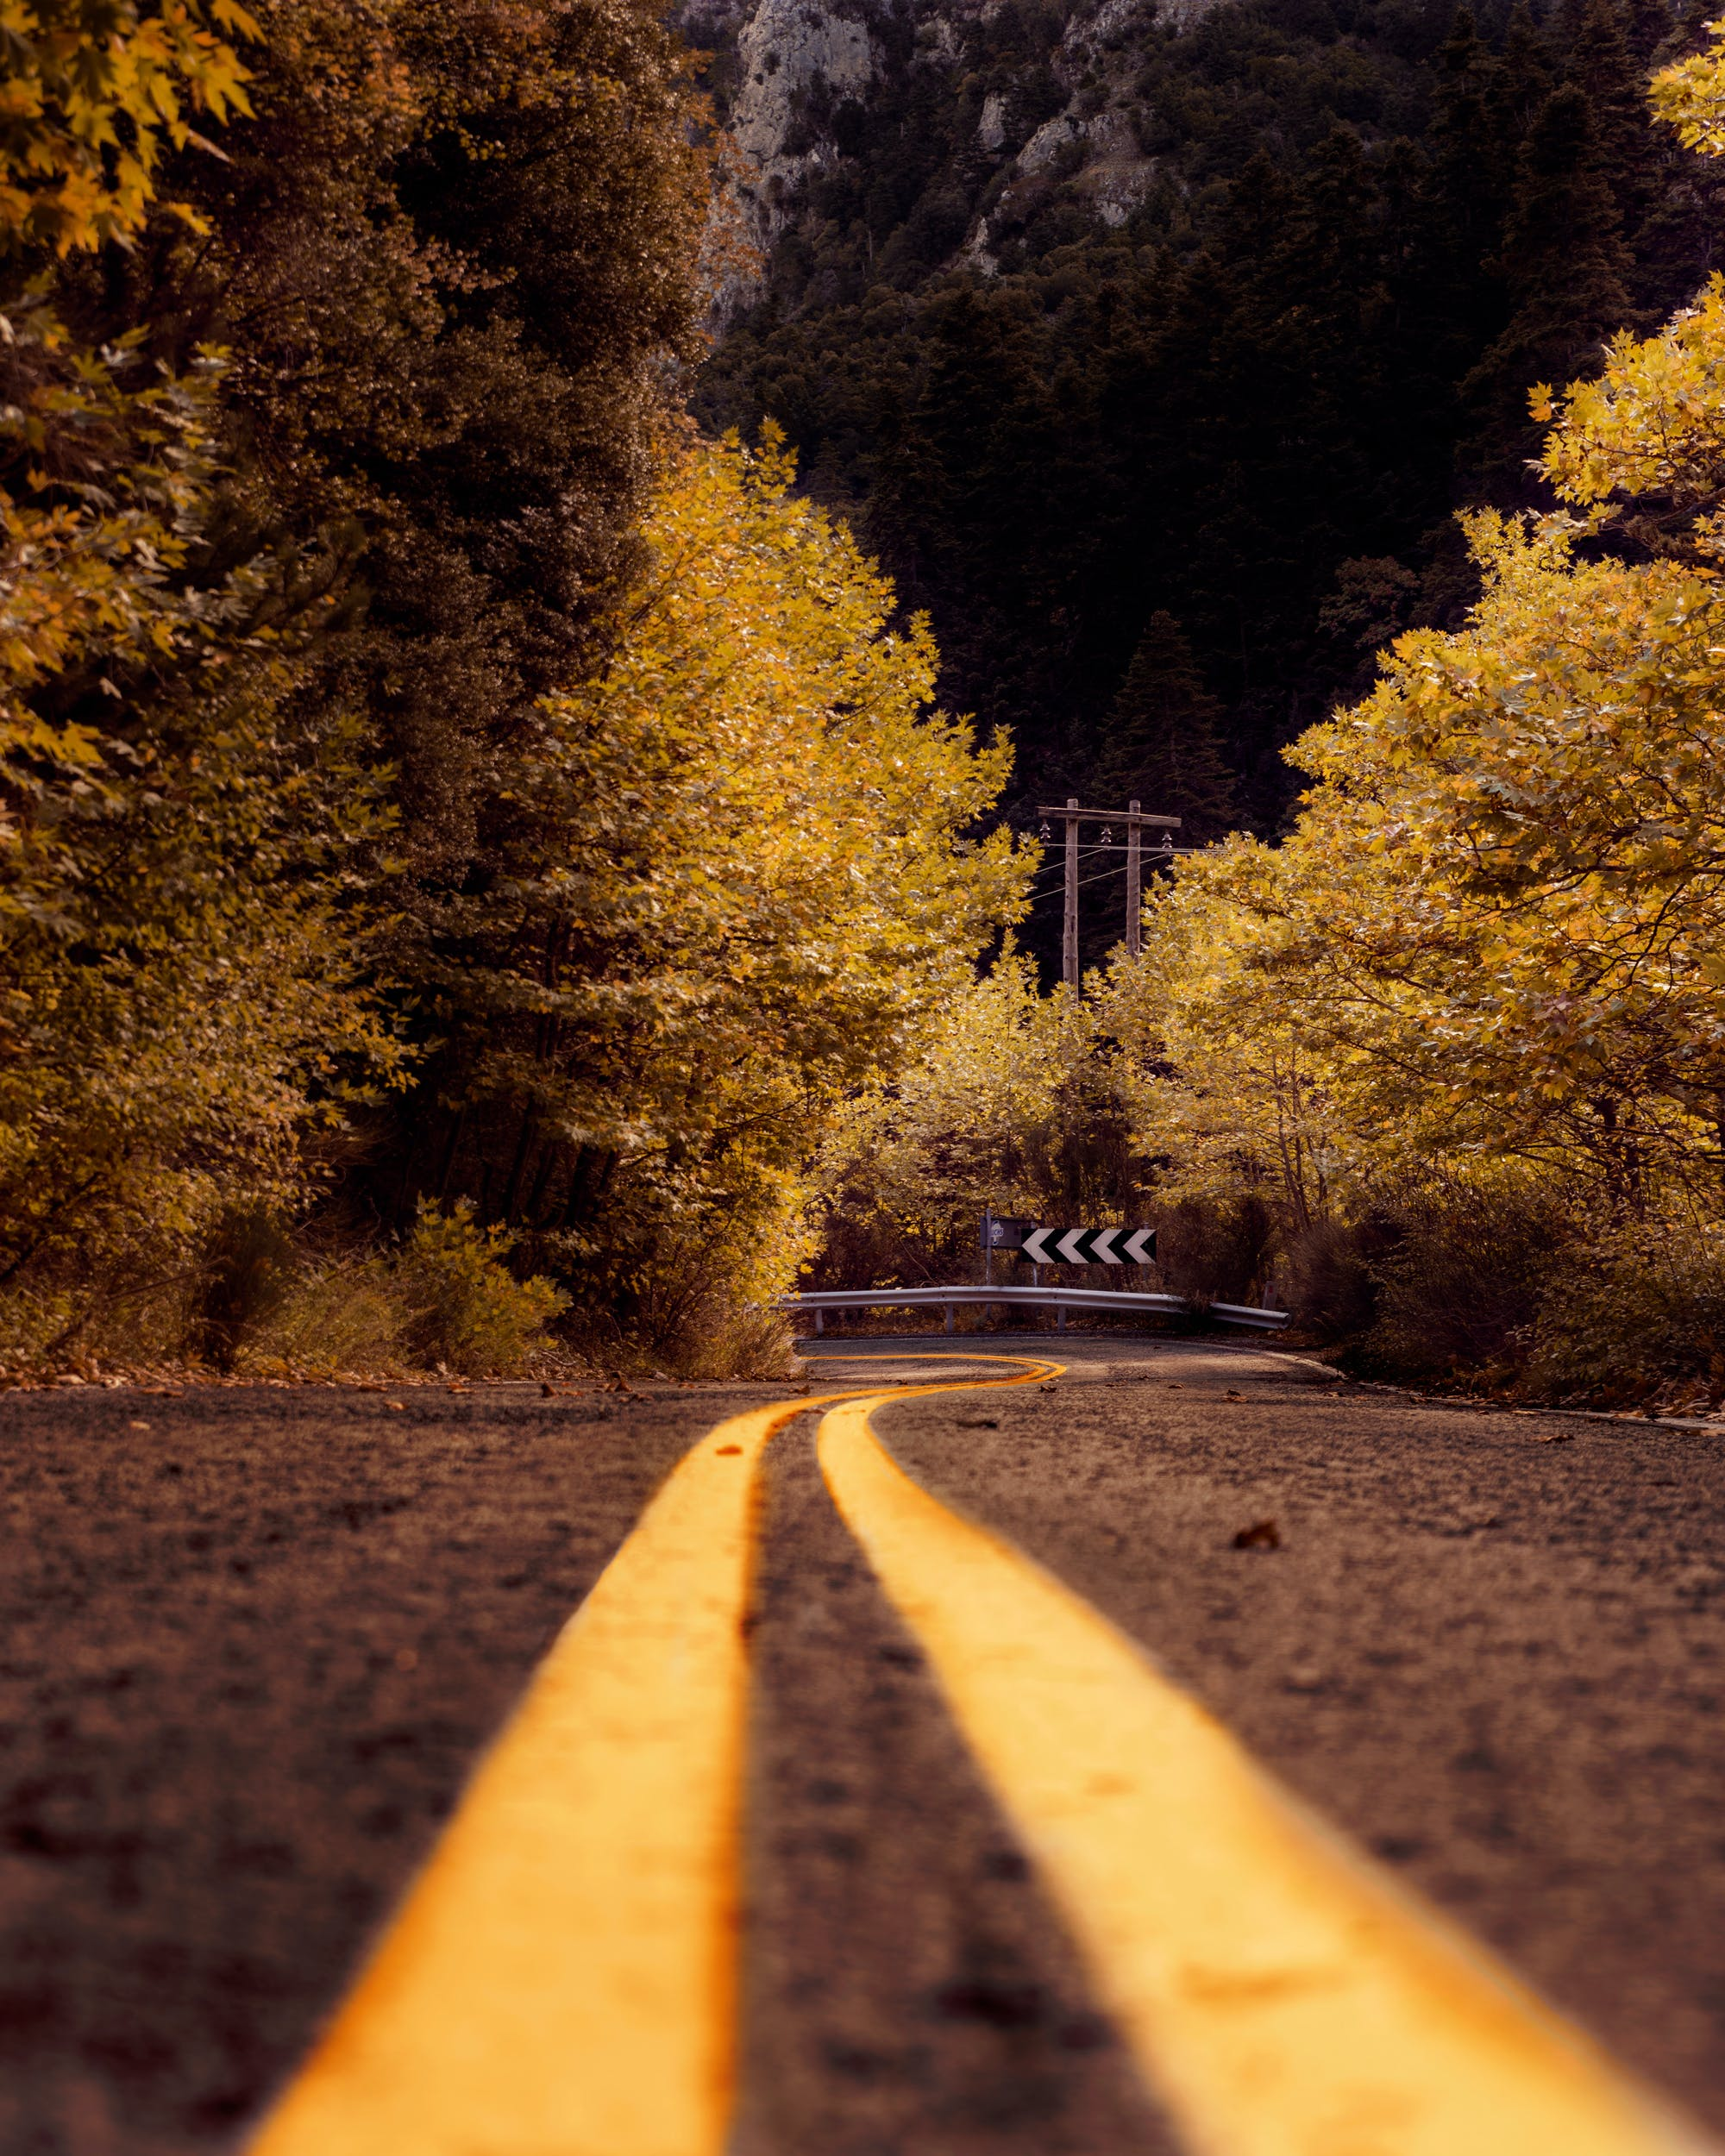 Sepia Photography of Asphalt Road in Between Trees